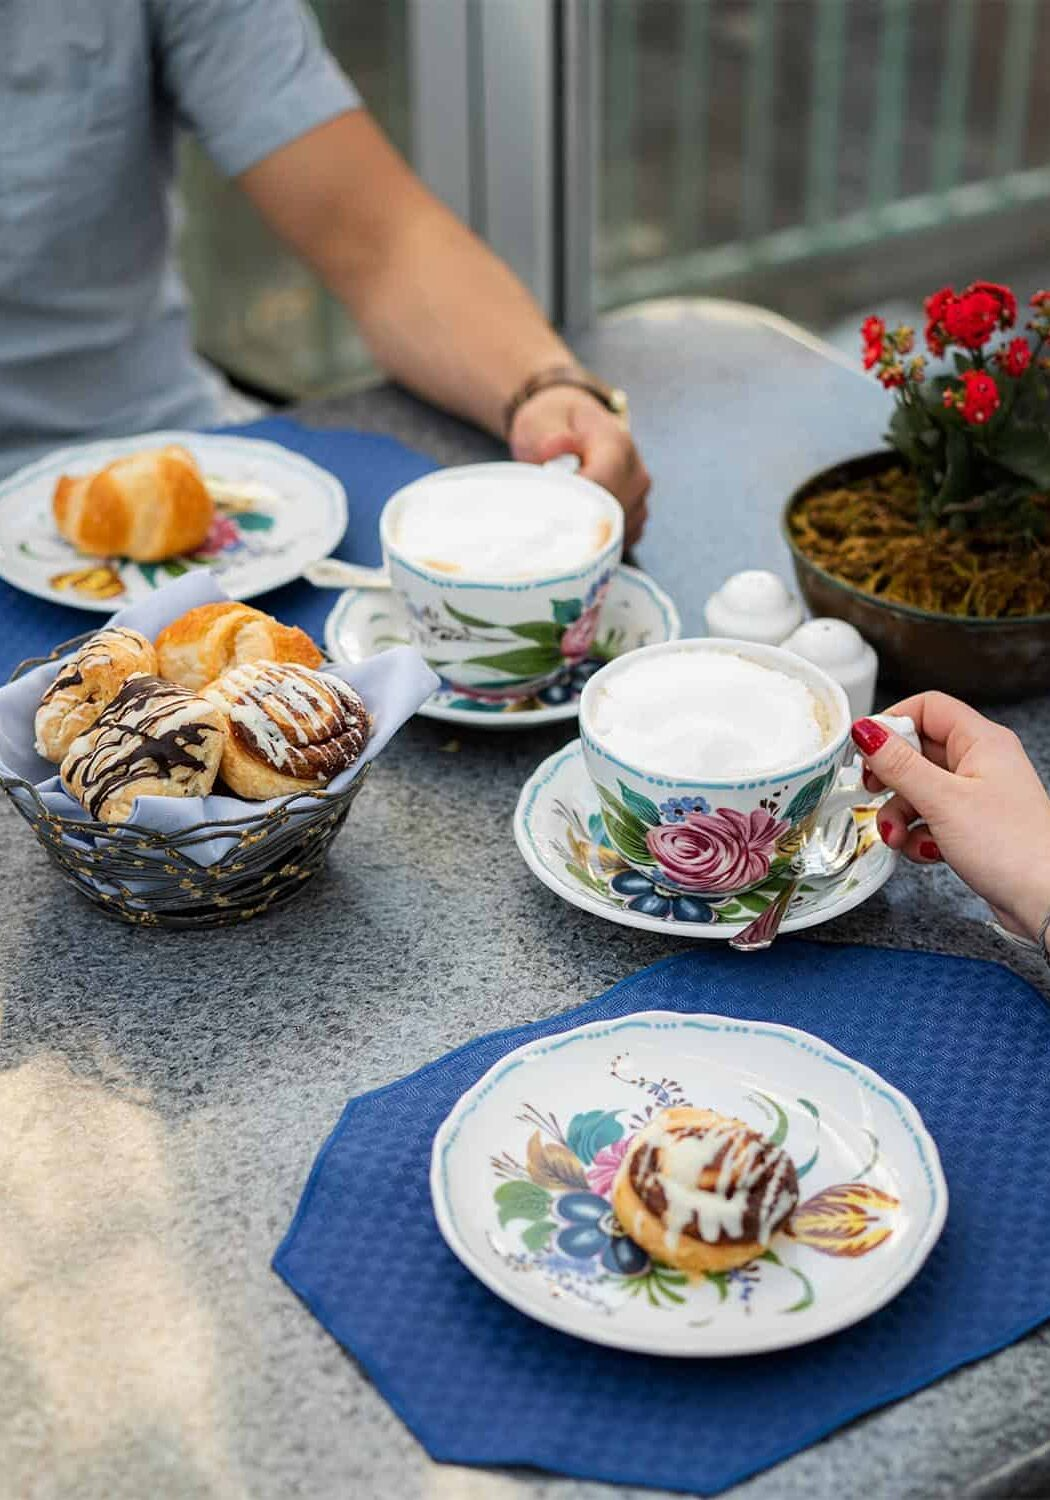 Closeup of table with breakfast pastries, and two people holding coffee cups